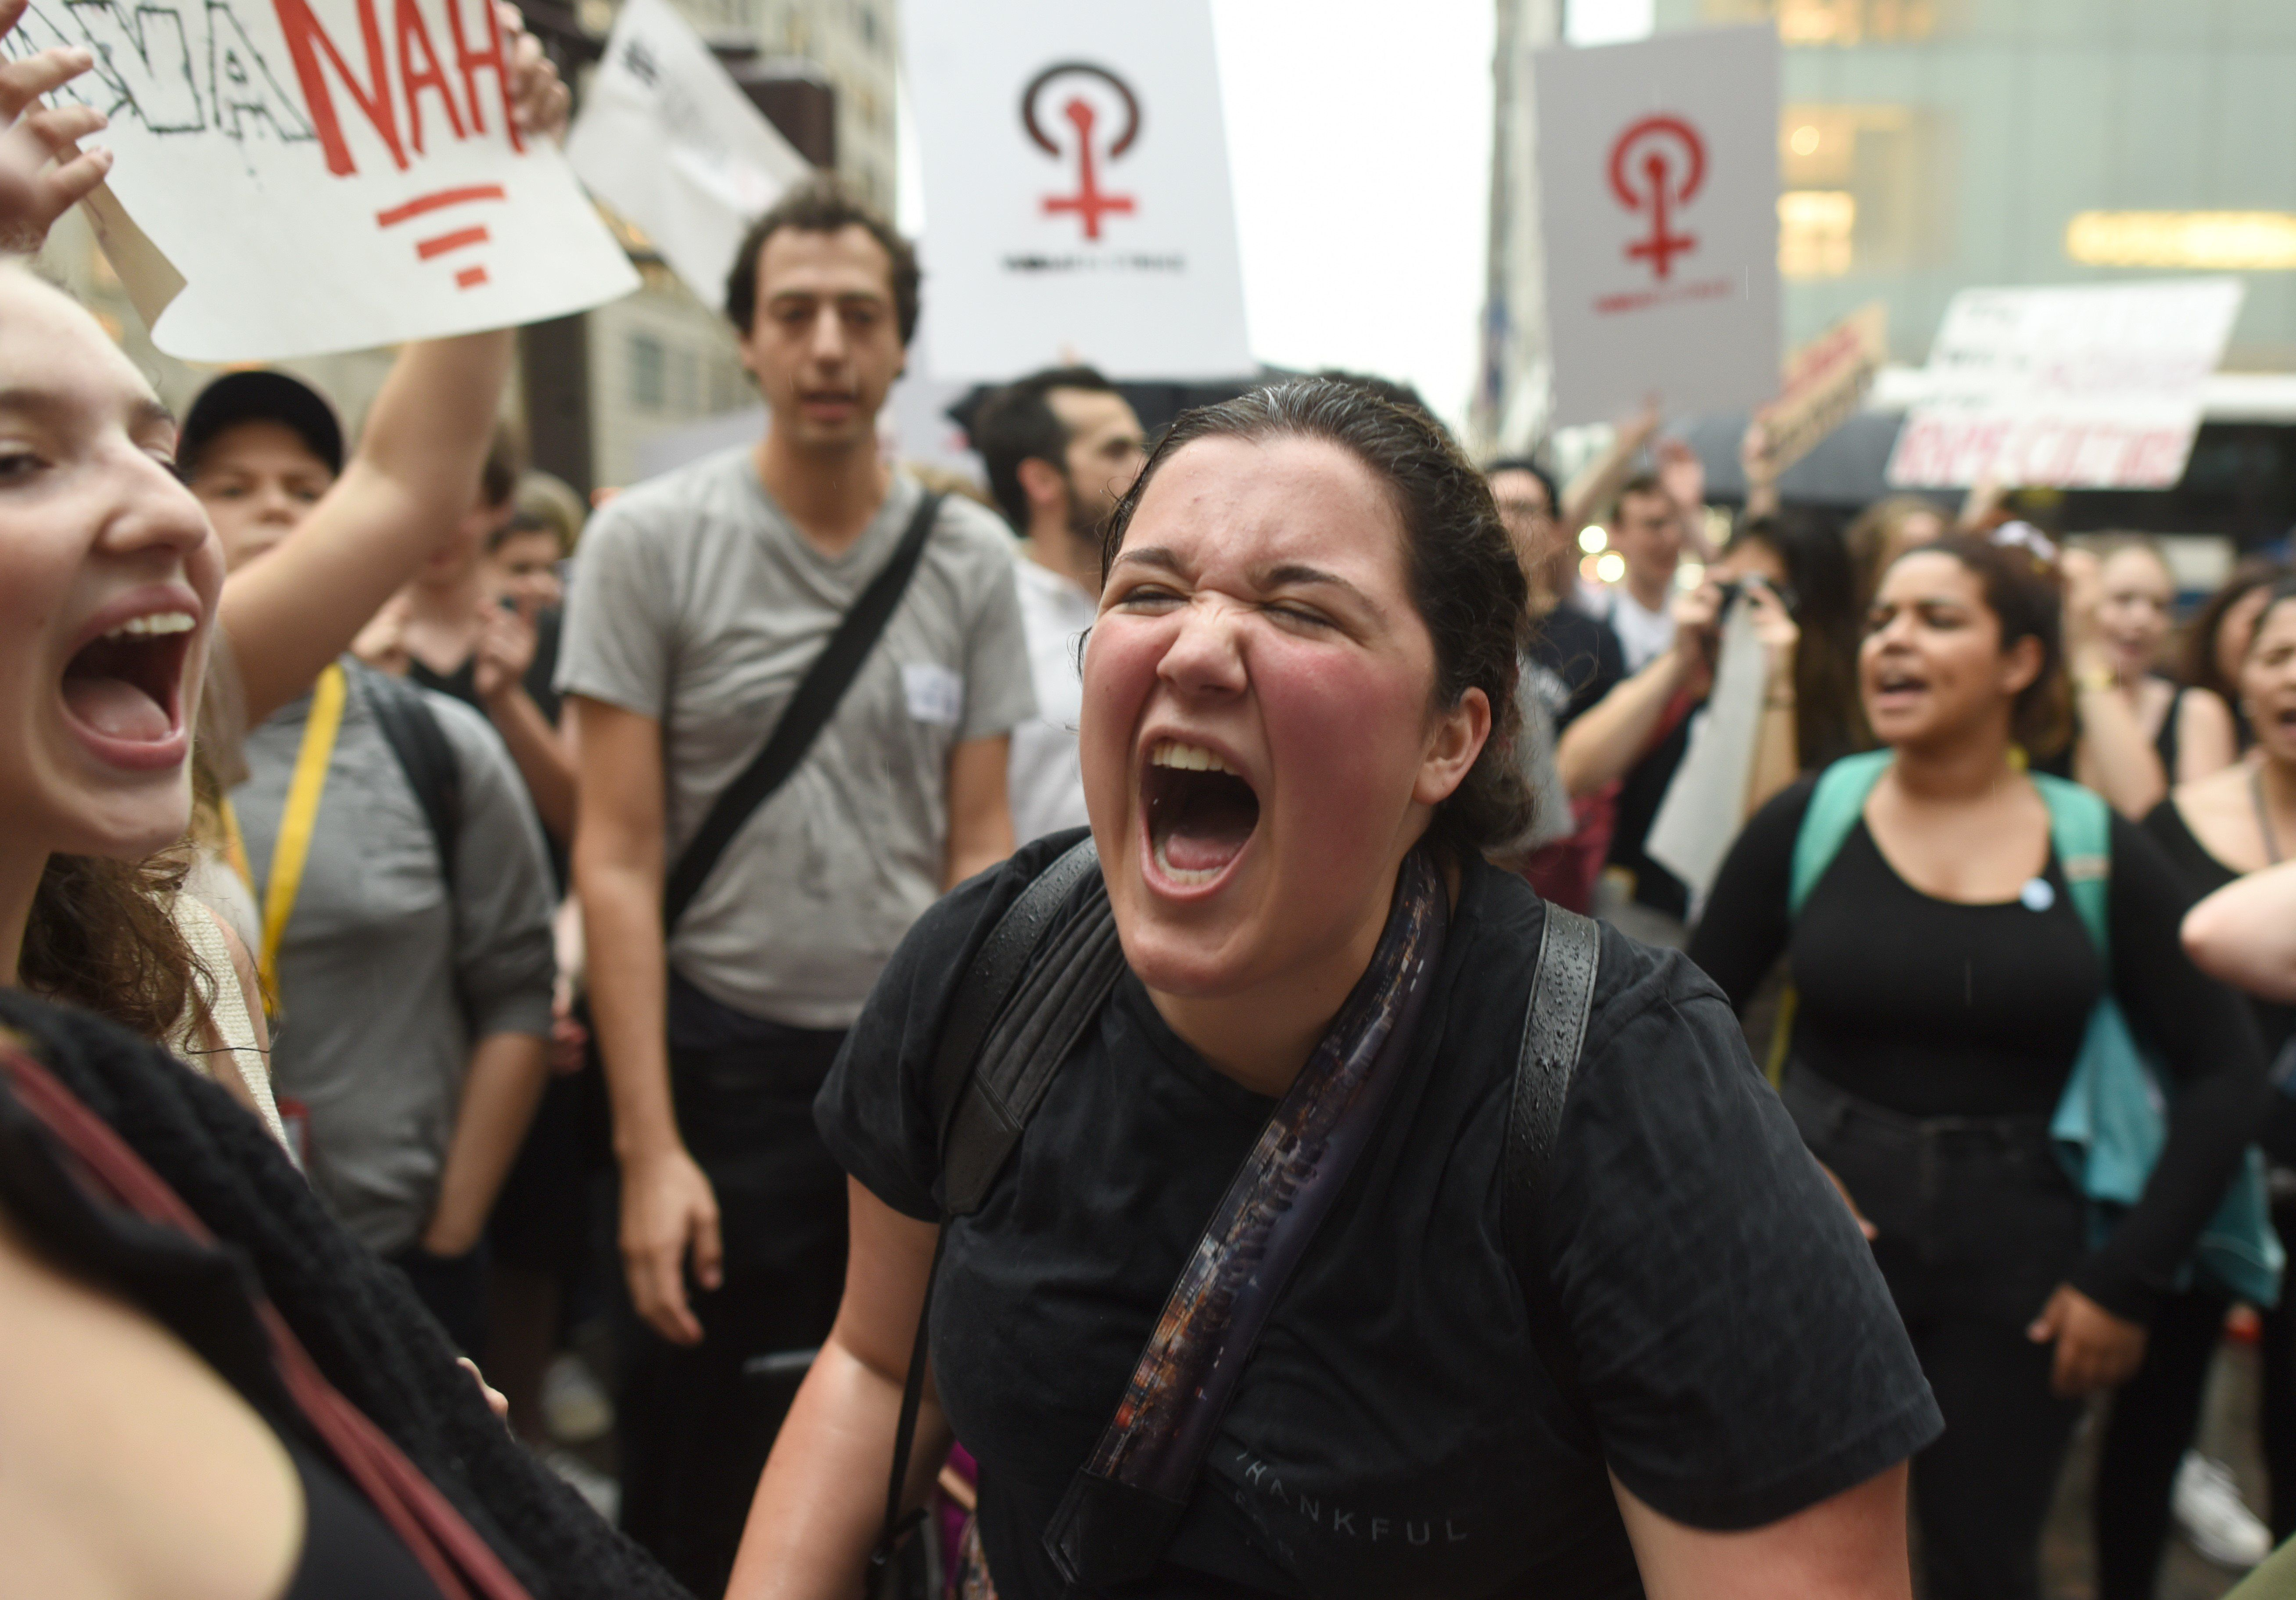 Women hold a  protest in front of Trump Tower in New York on October 4, 2018 against Supreme Court nominee Brett Kavanaugh. - Top Republicans voiced confidence Thursday that Brett Kavanaugh will be confirmed to the US Supreme Court this weekend, as they asserted that an FBI probe had found nothing to support sex assault allegations against Donald Trump's nominee.'Judge Kavanaugh should be confirmed on Saturday,' Senator Chuck Grassley of Iowa, the chairman of the Senate Judiciary Committee, told reporters. (Photo by TIMOTHY A. CLARY / AFP)        (Photo credit should read TIMOTHY A. CLARY/AFP/Getty Images)